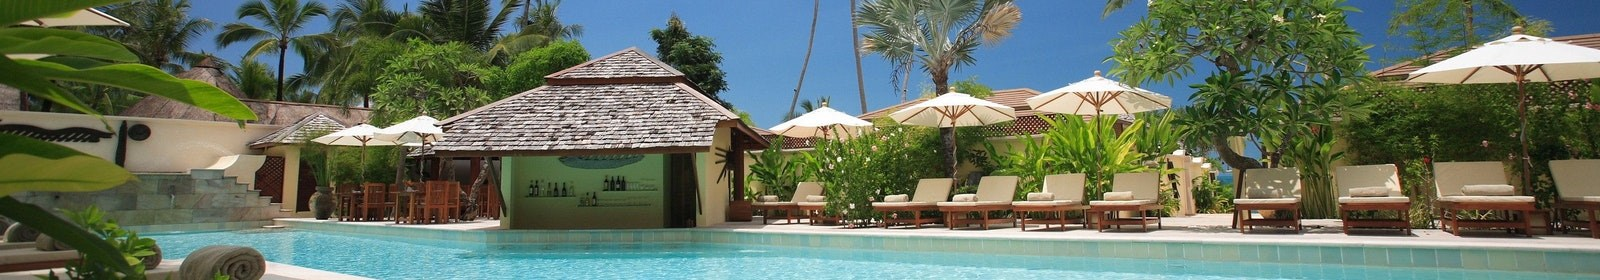 Investing in paradise: Holiday homes with added second passport benefits for South Africans